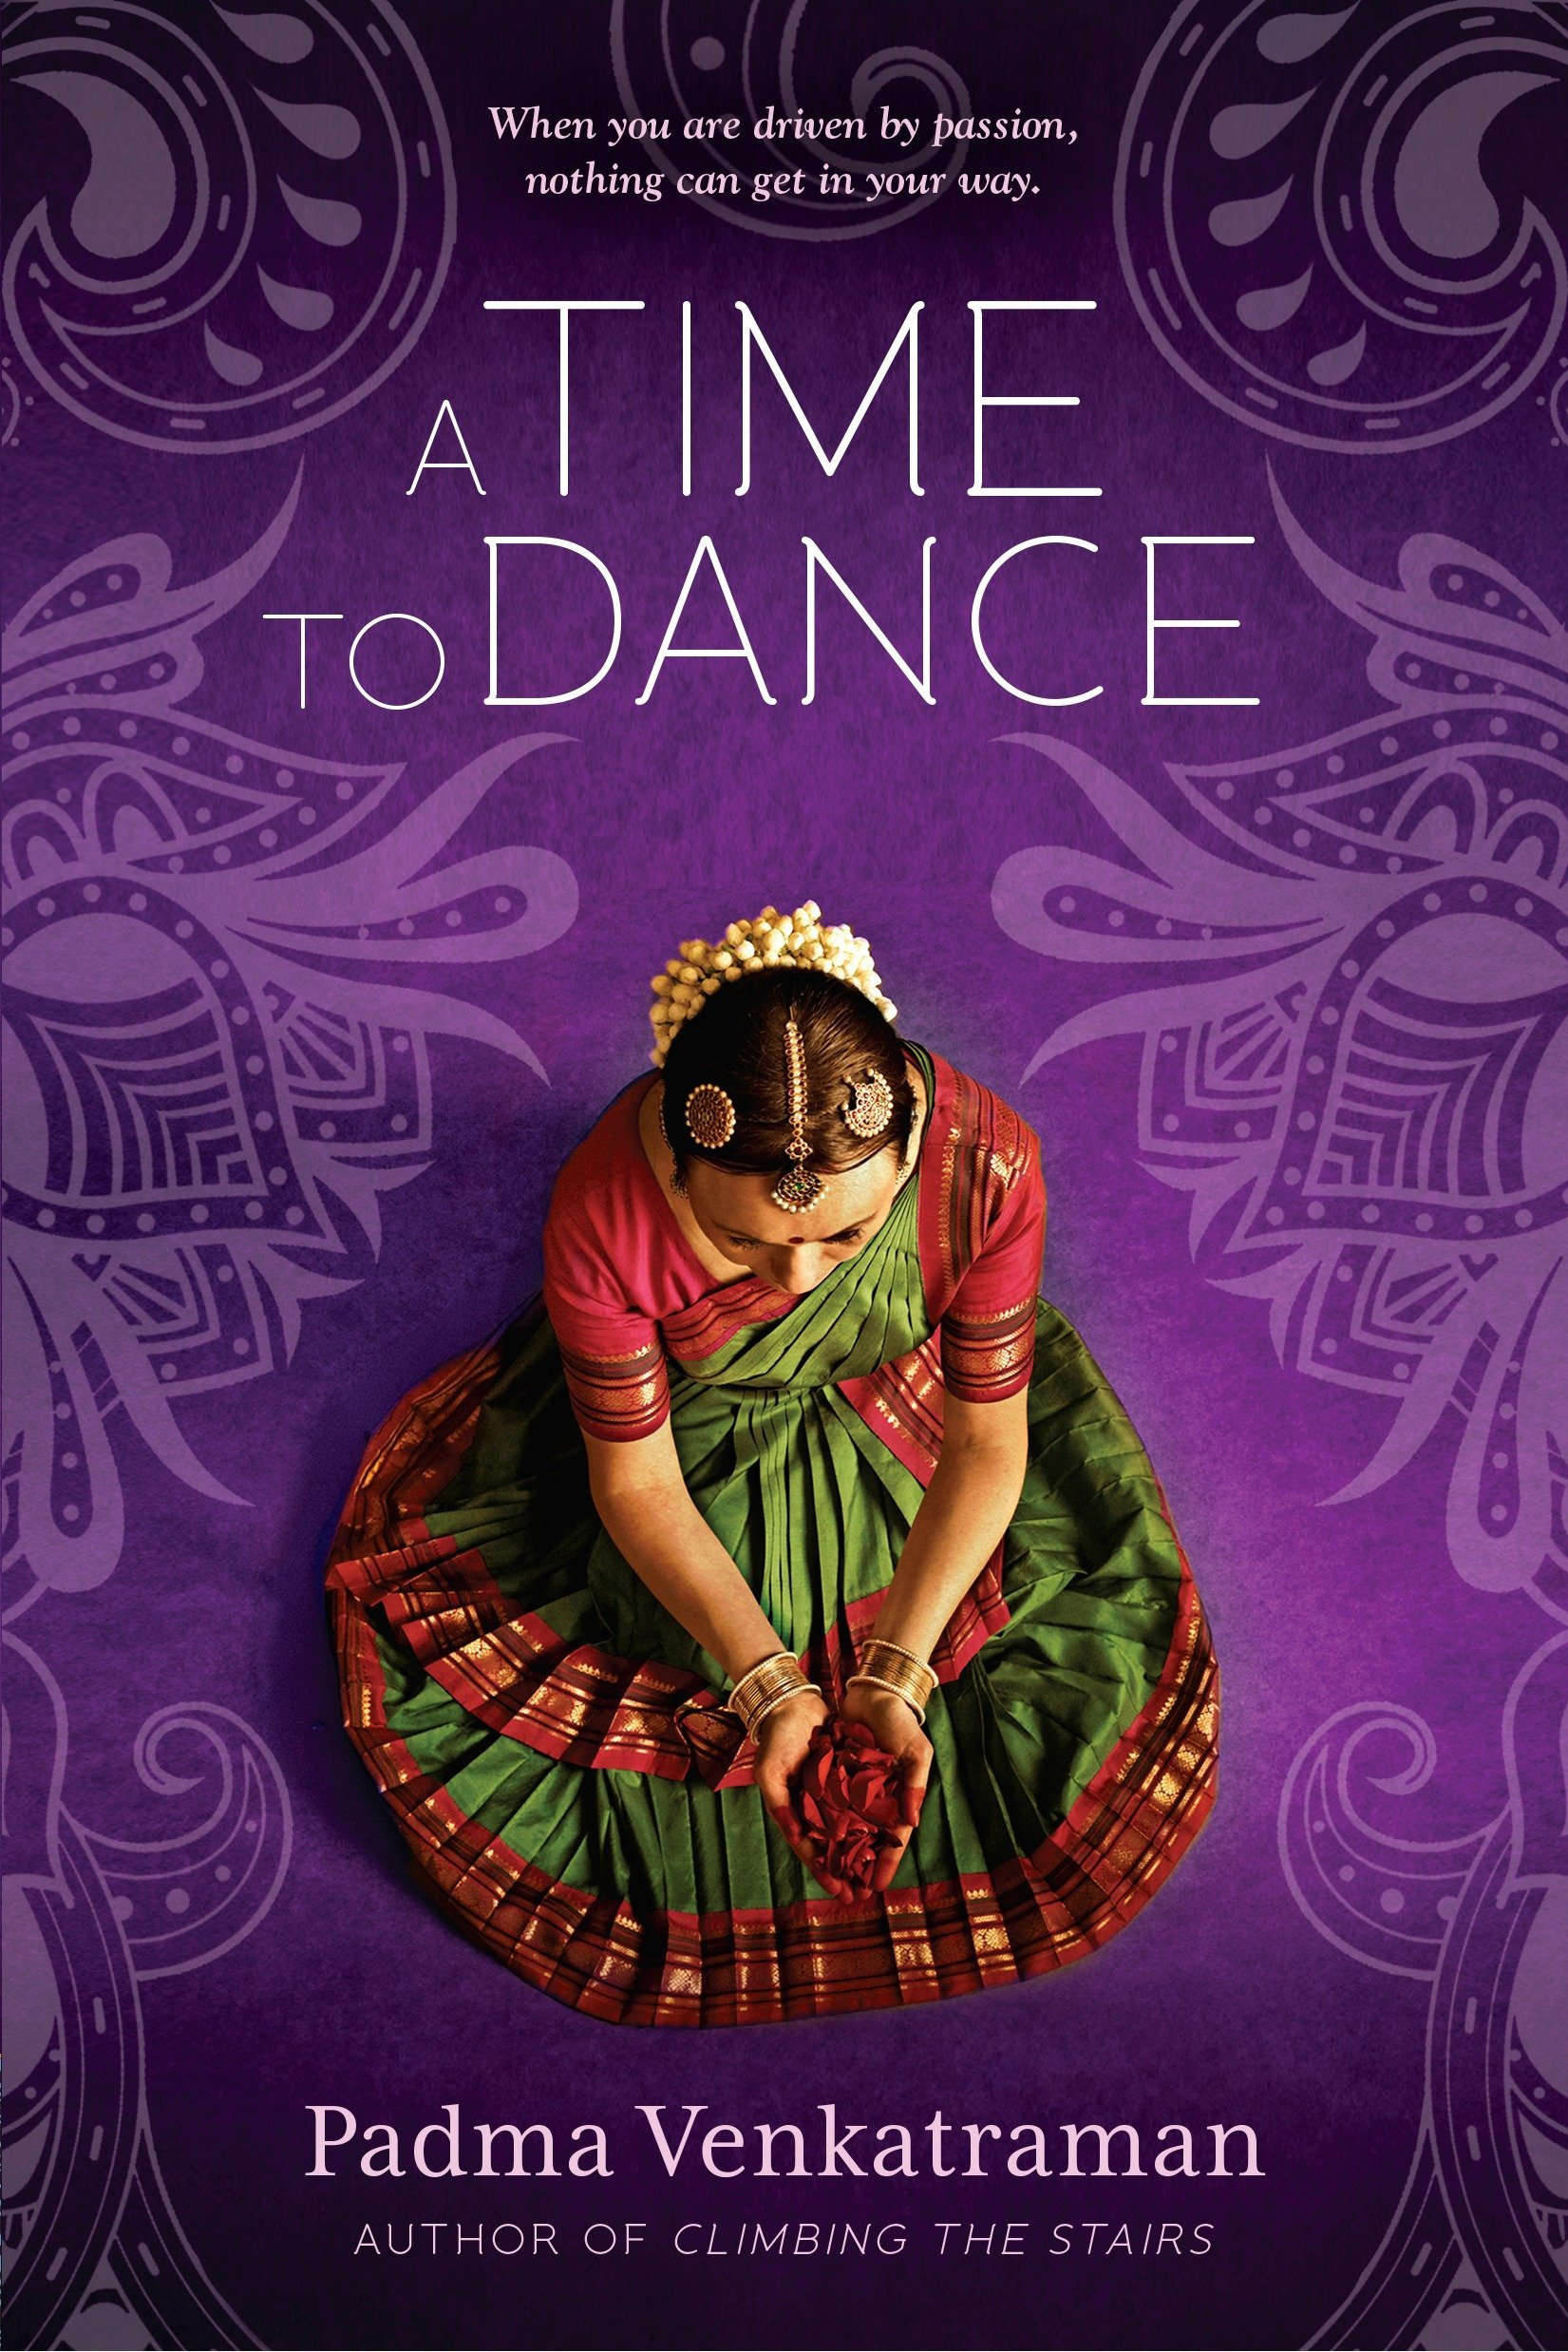 (2015) Padma Venkatraman's inspiring story of a young girl's struggle to regain her passion and find a new peace is told lyrically through verse that captures the beauty and mystery of India and the ancient bharatanatyam dance form. This is a stunning novel about spiritual awakening, the power of art, and above all, the courage and resilience of the human spirit. -